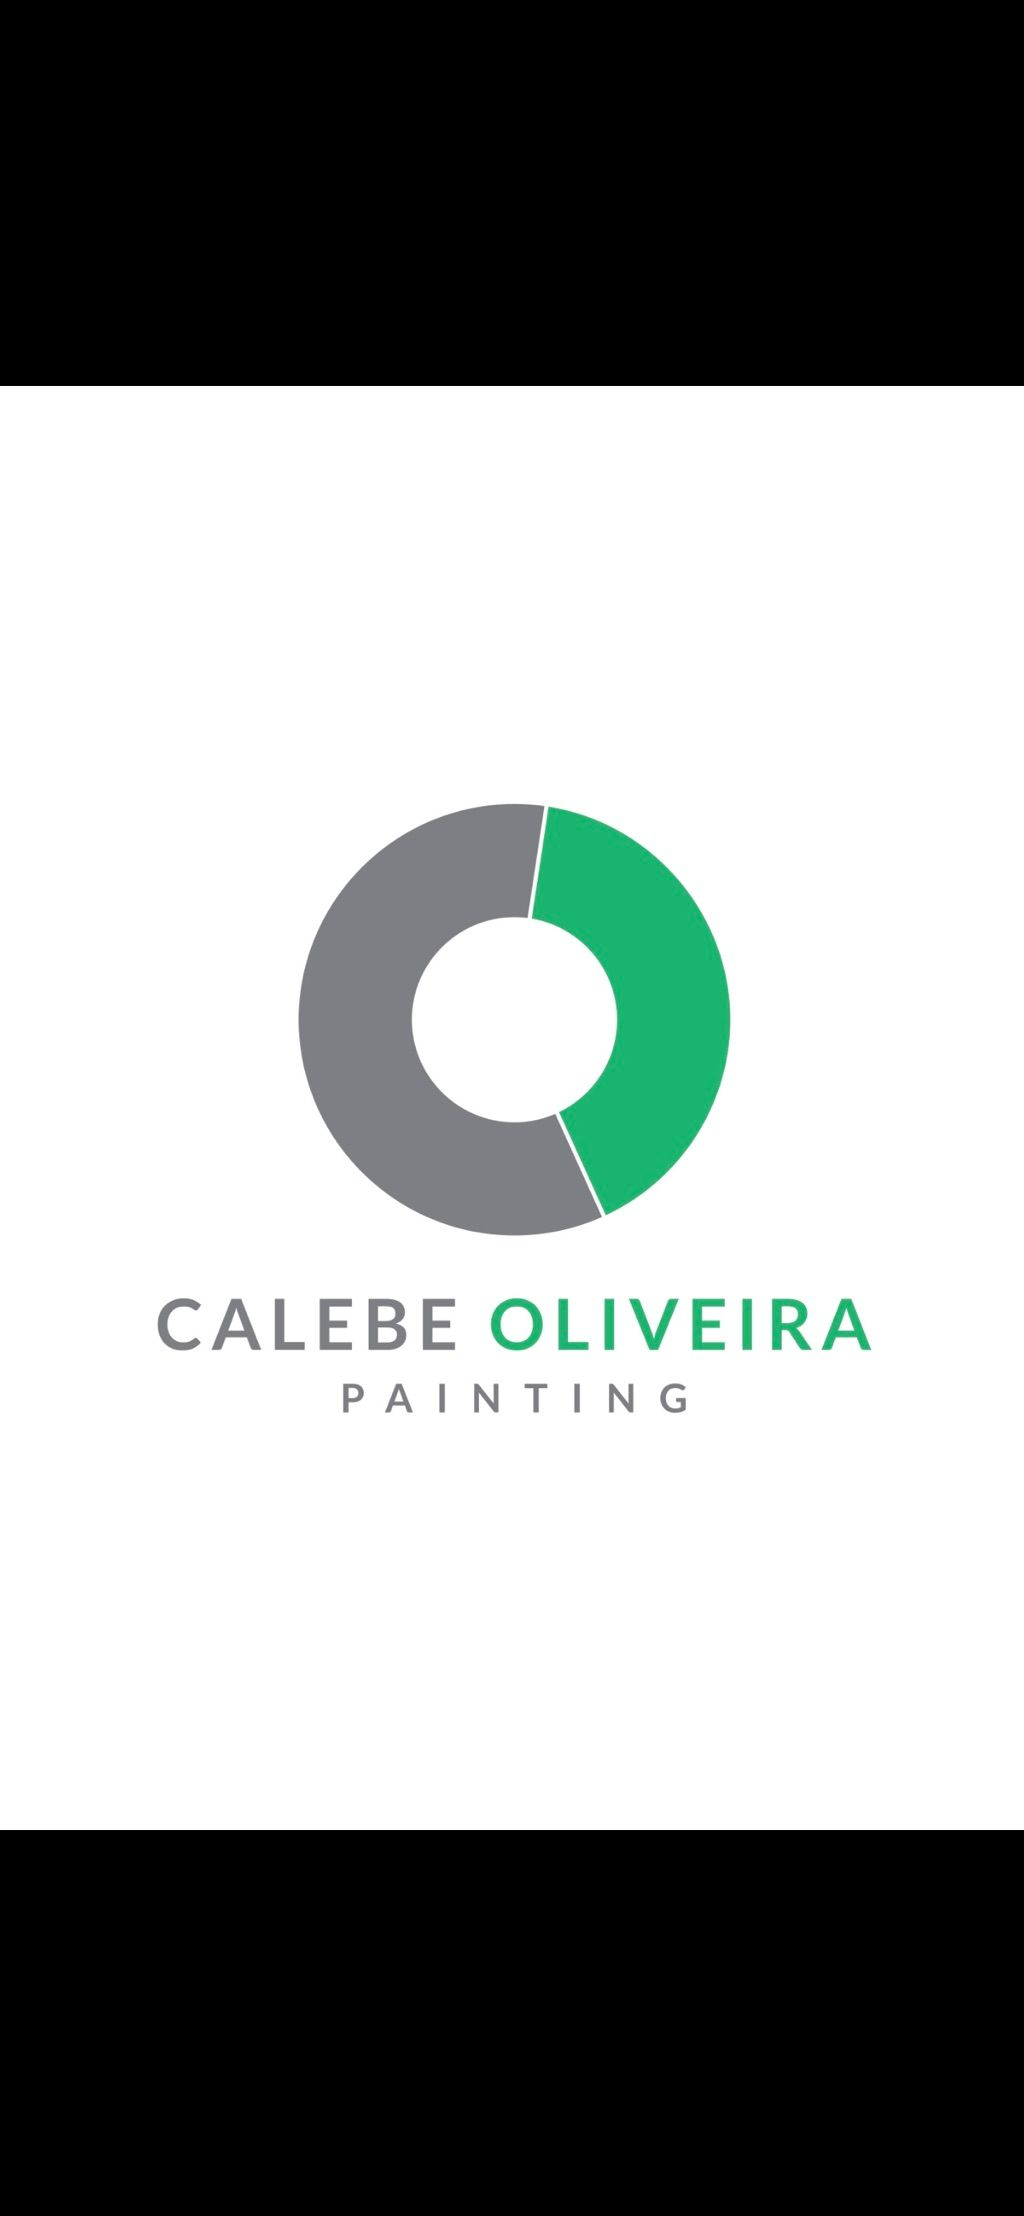 Calebe oliveira painting and decoration